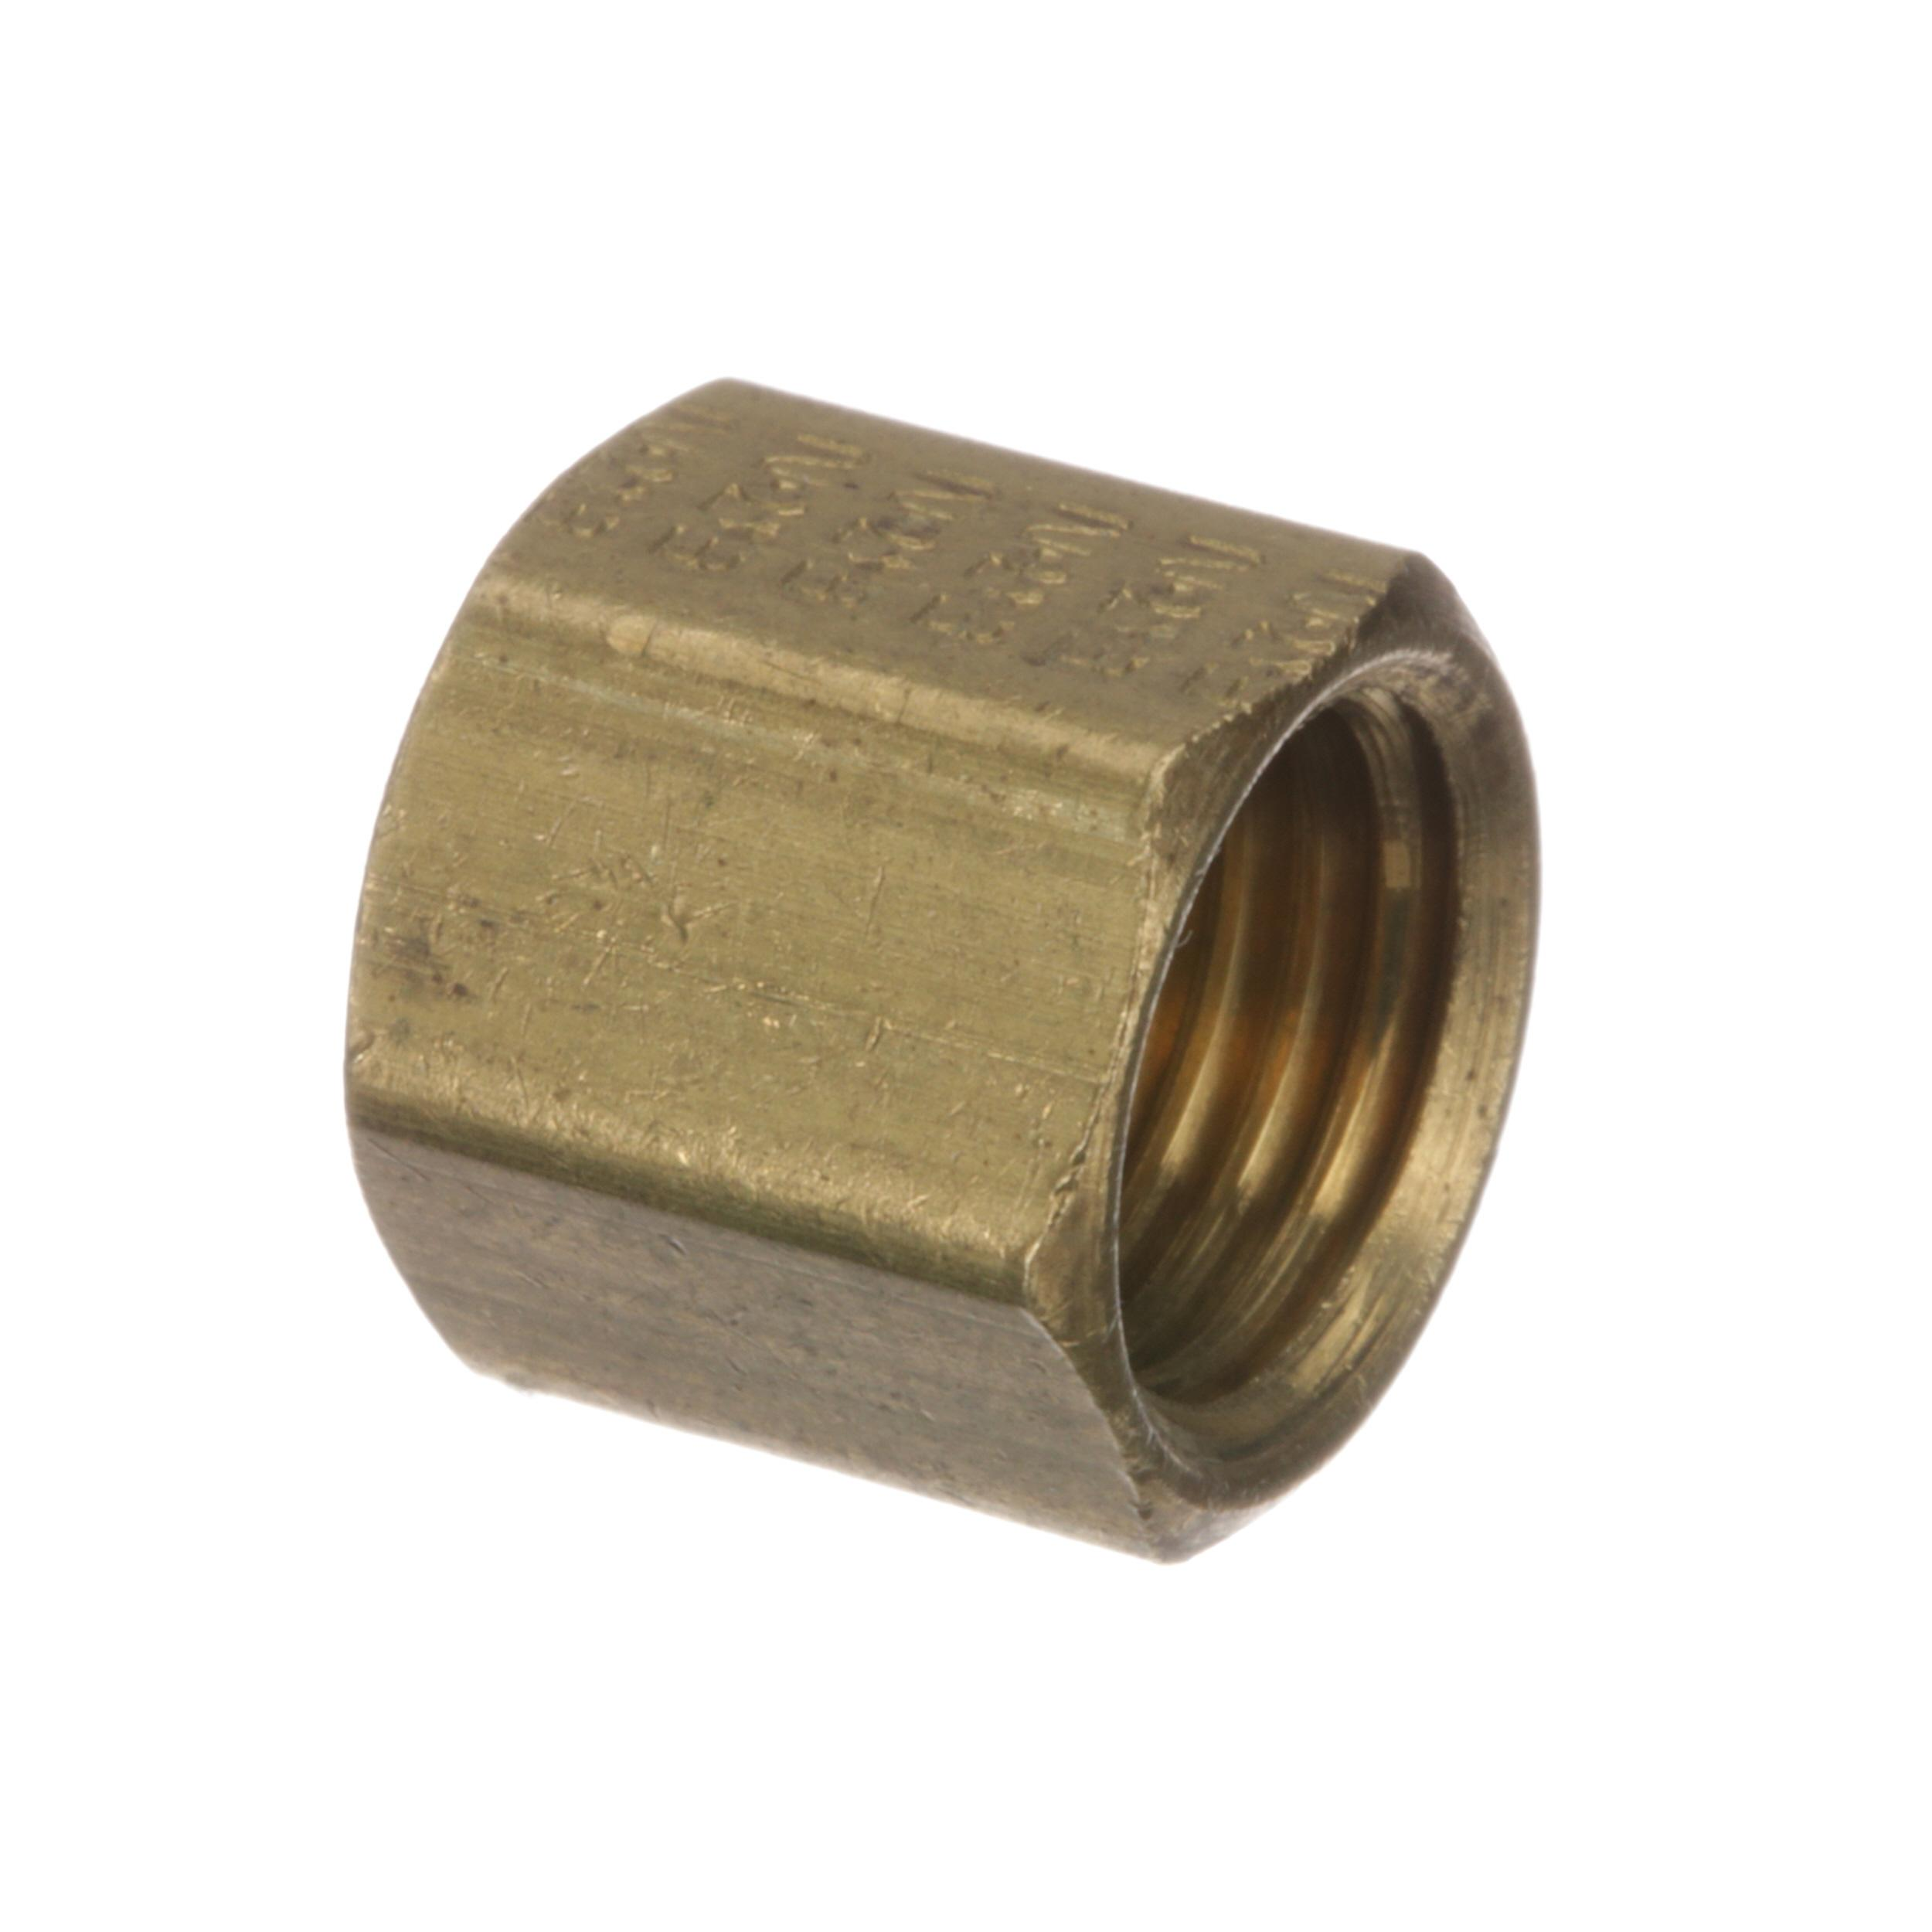 WYOTT NUT, 3/8-24 COMPRESSION, BRASS